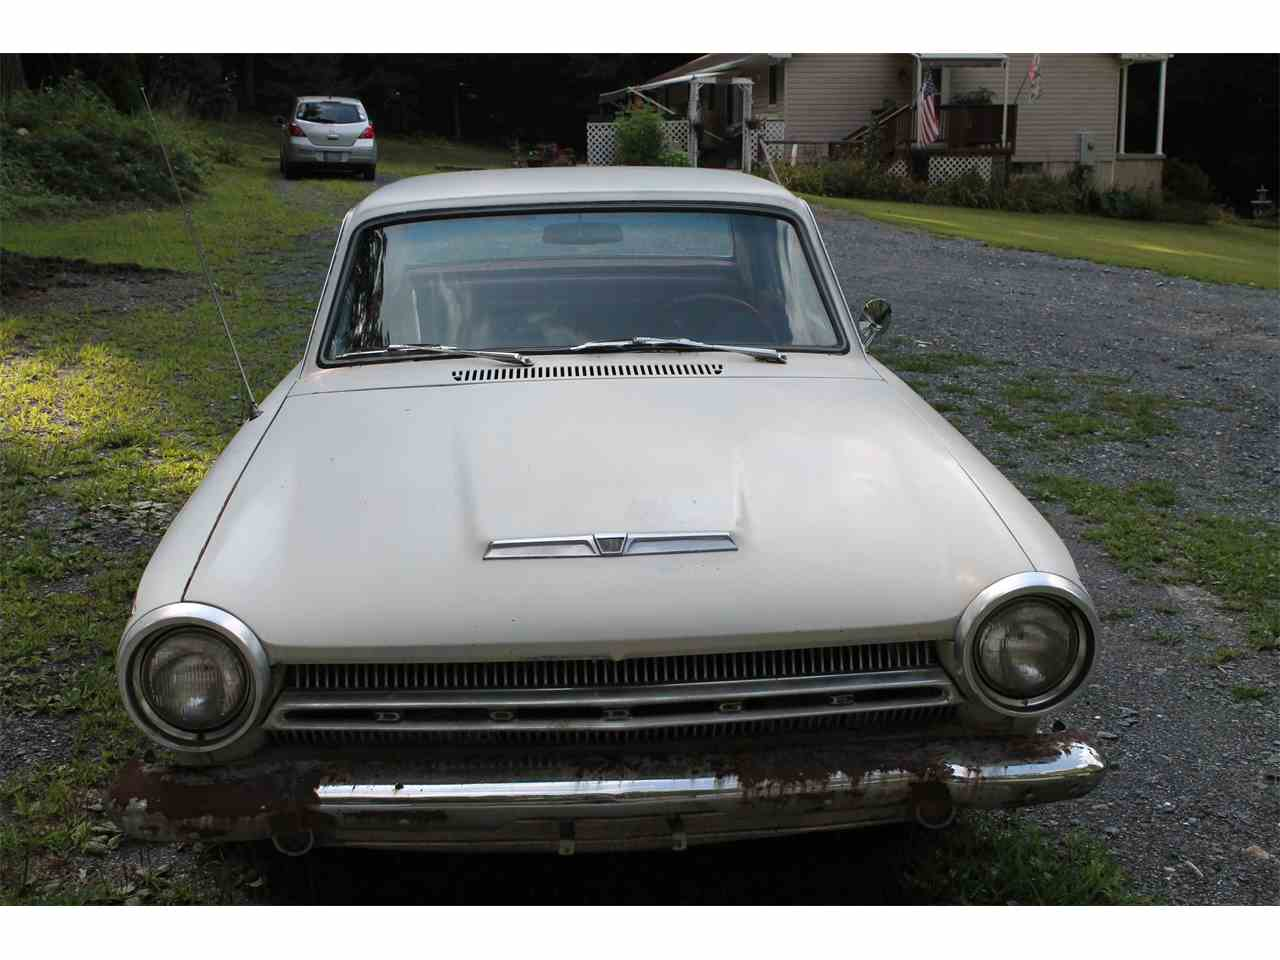 Large Picture of '64 Dodge Dart - $5,000.00 Offered by a Private Seller - F2G5